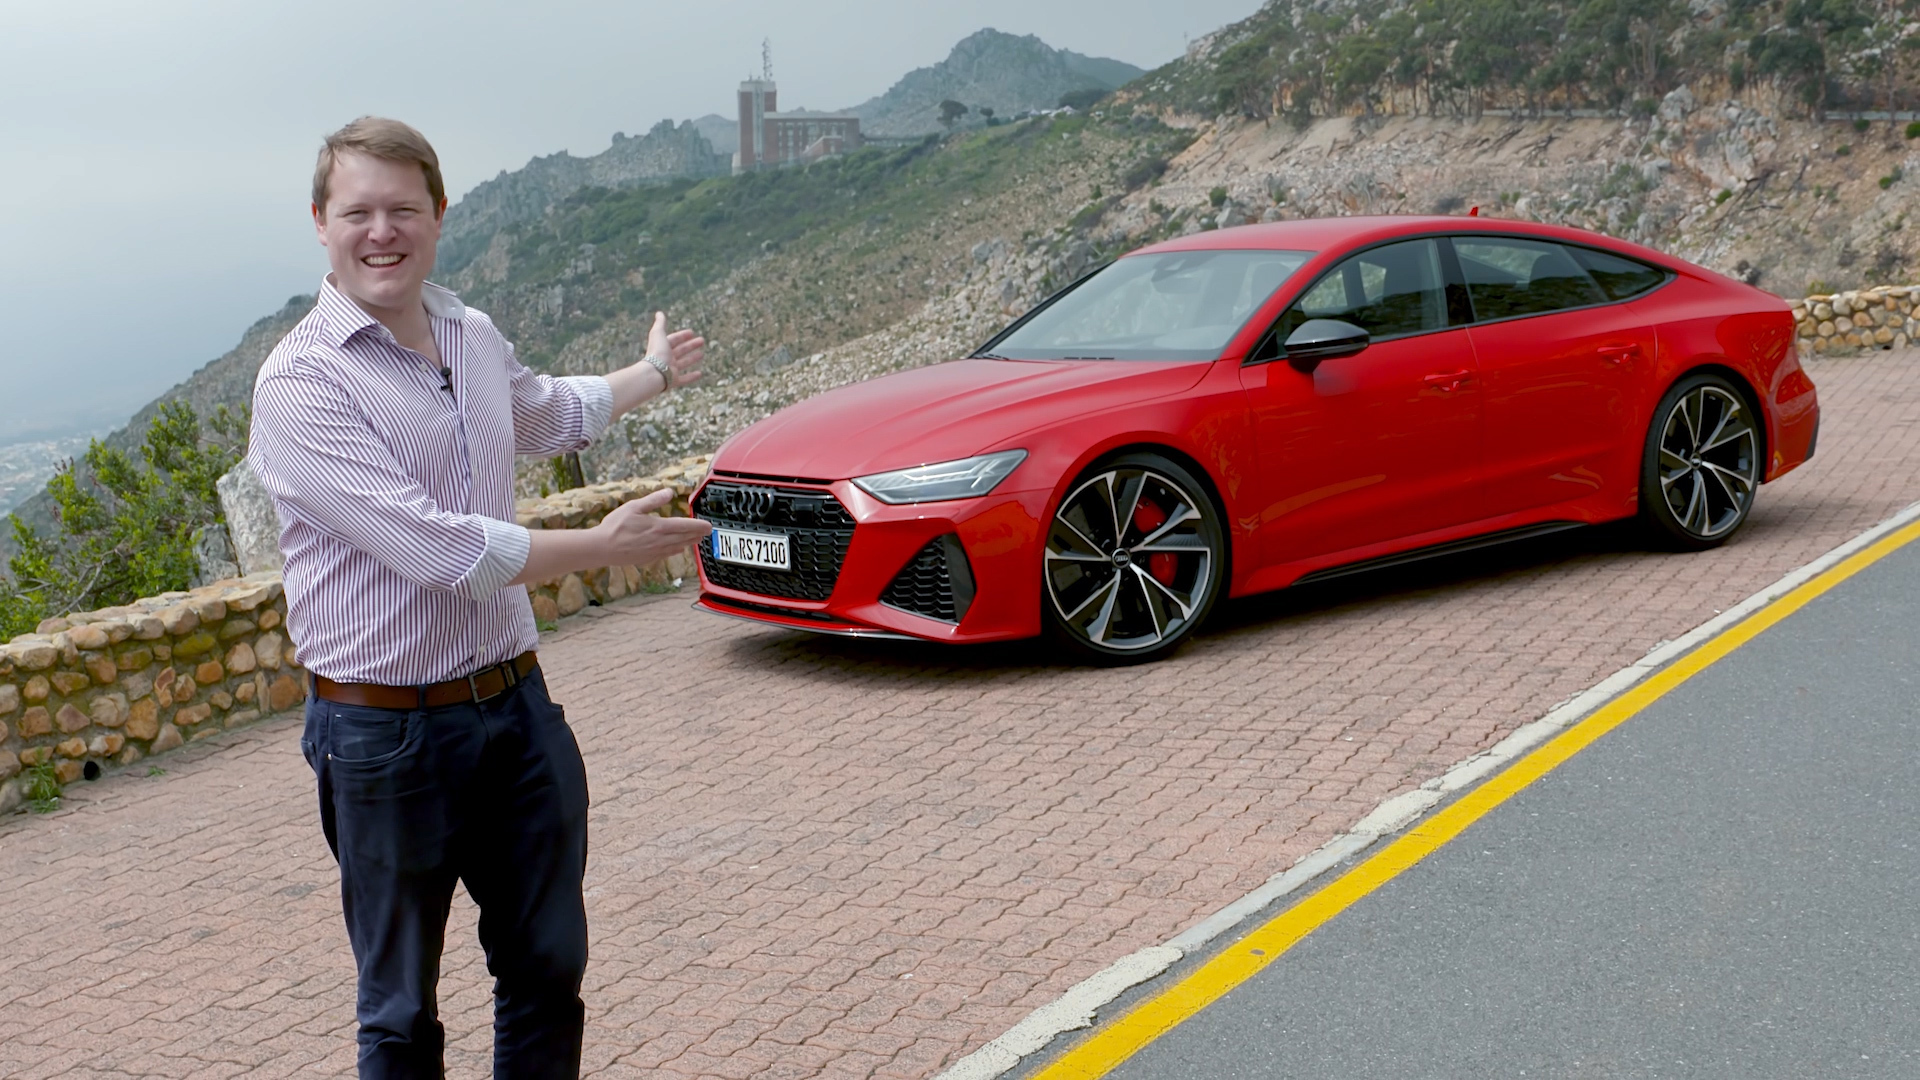 Shmee reviews the new Audi RS 7 Sportback